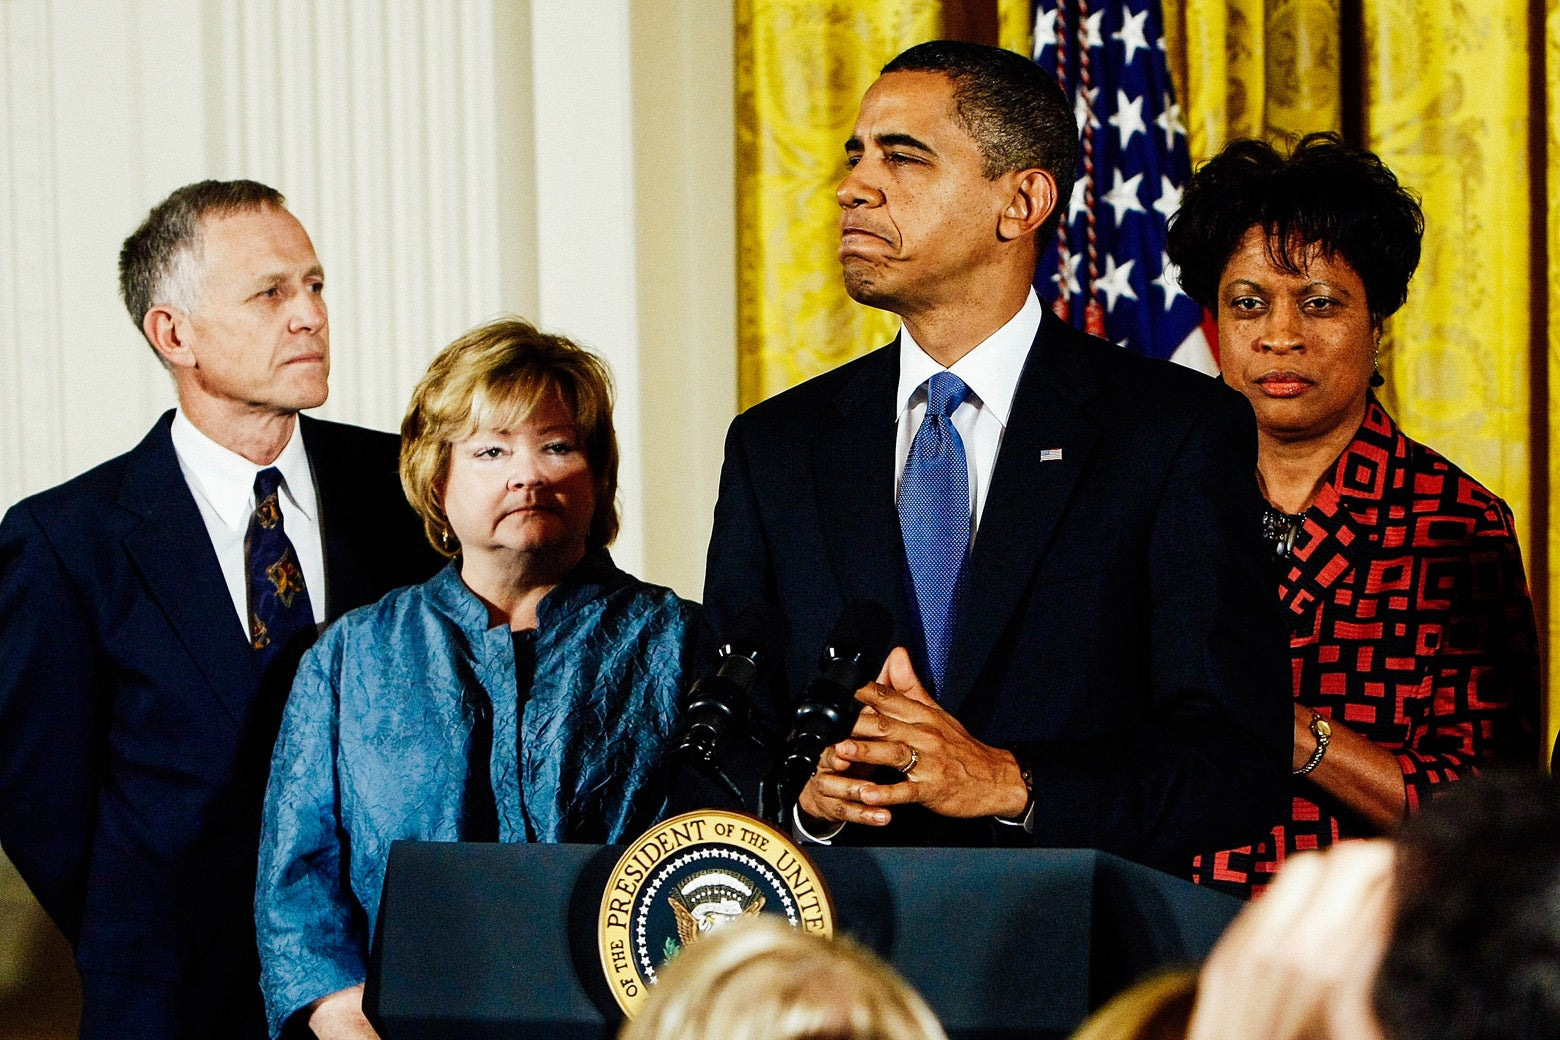 Barack Obama delivers remarks on the enactment of the Shepard-Byrd Hate Crimes Prevention Act.